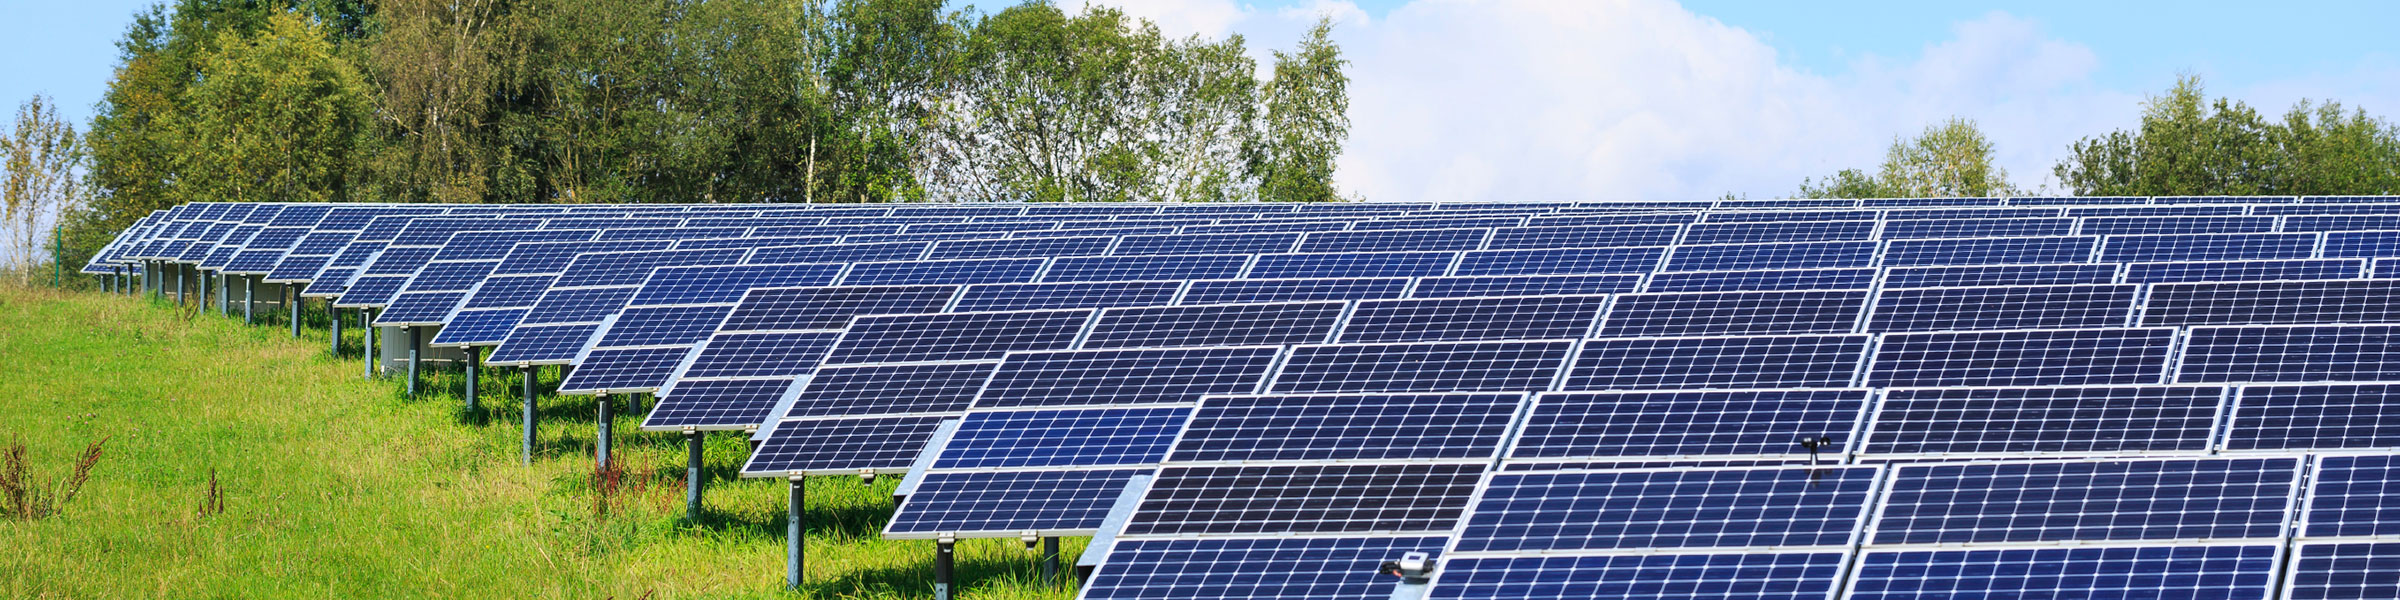 The Park Foundation located in Ithaca, NY addresses climate change by reducing energy using a renewable energy source.